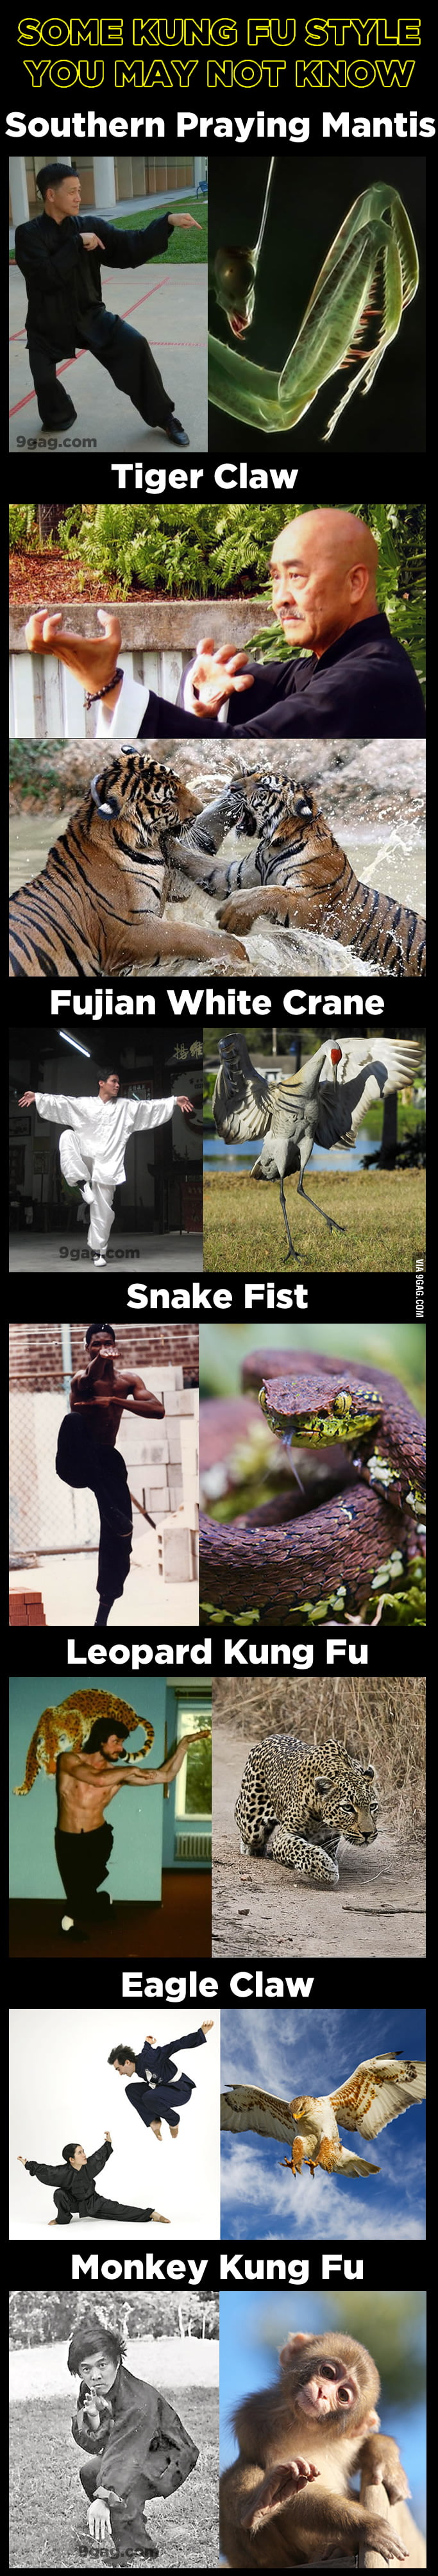 7 Kung Fu styles which inspired by animals